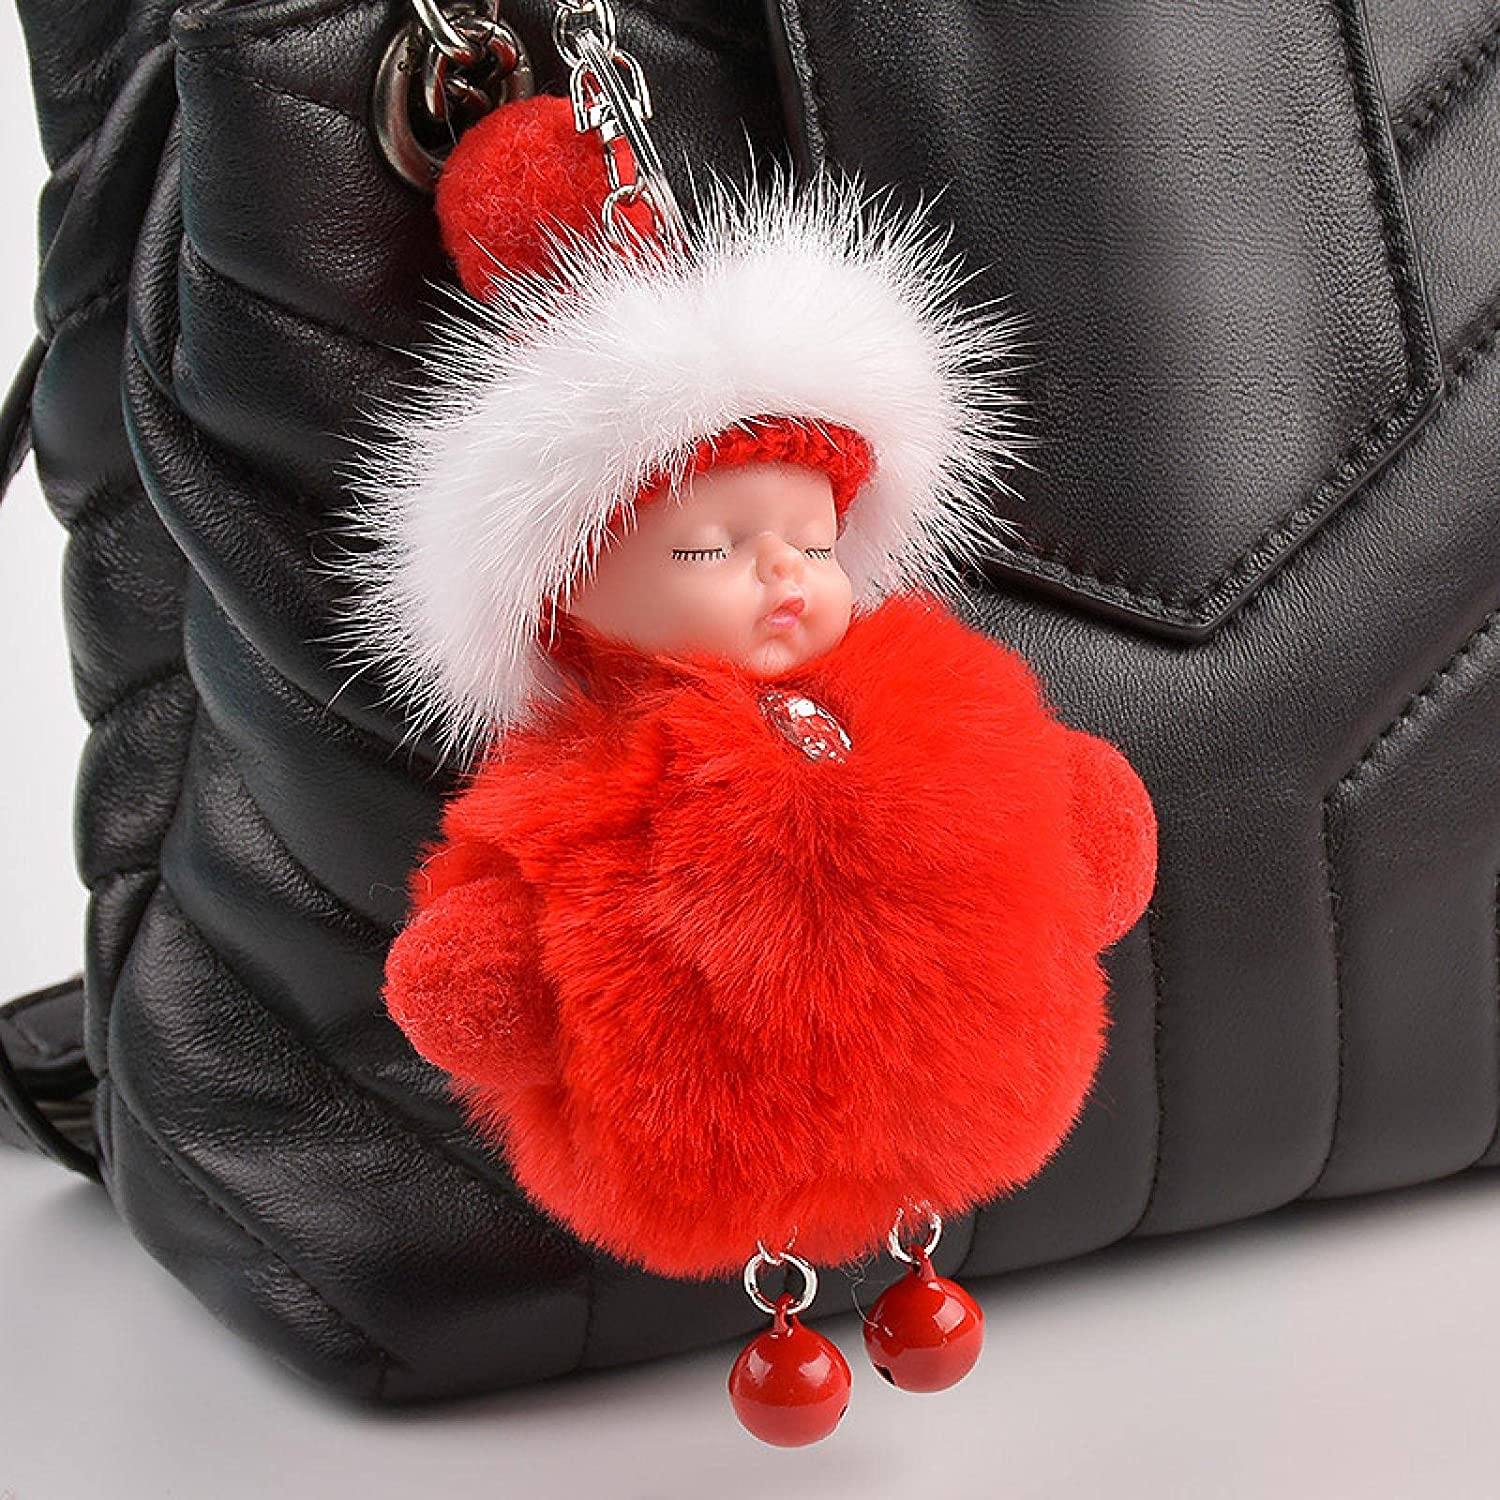 Jin Chuang New Pompom Sleeping baby19cm Keychain Cute Fluffy Plush Doll Keychains Women Girl Bag keyrings Cars Key Ring Jewelry Gift Porte cl Red